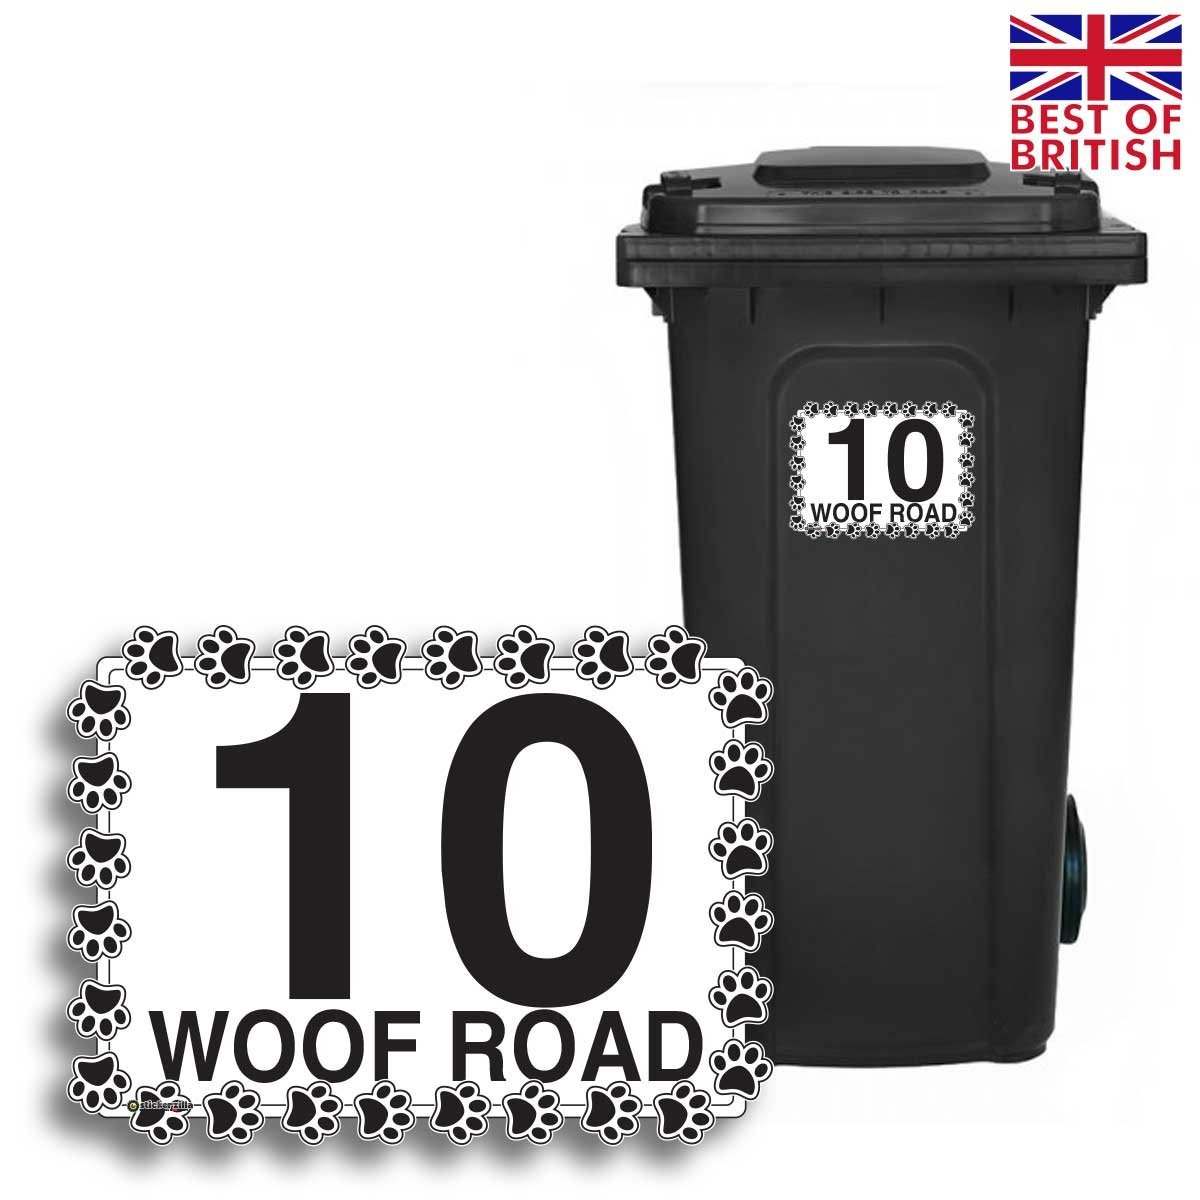 A5 4 x pack dog paws personalised wheelie bin sticker vinyl labels with house number street name